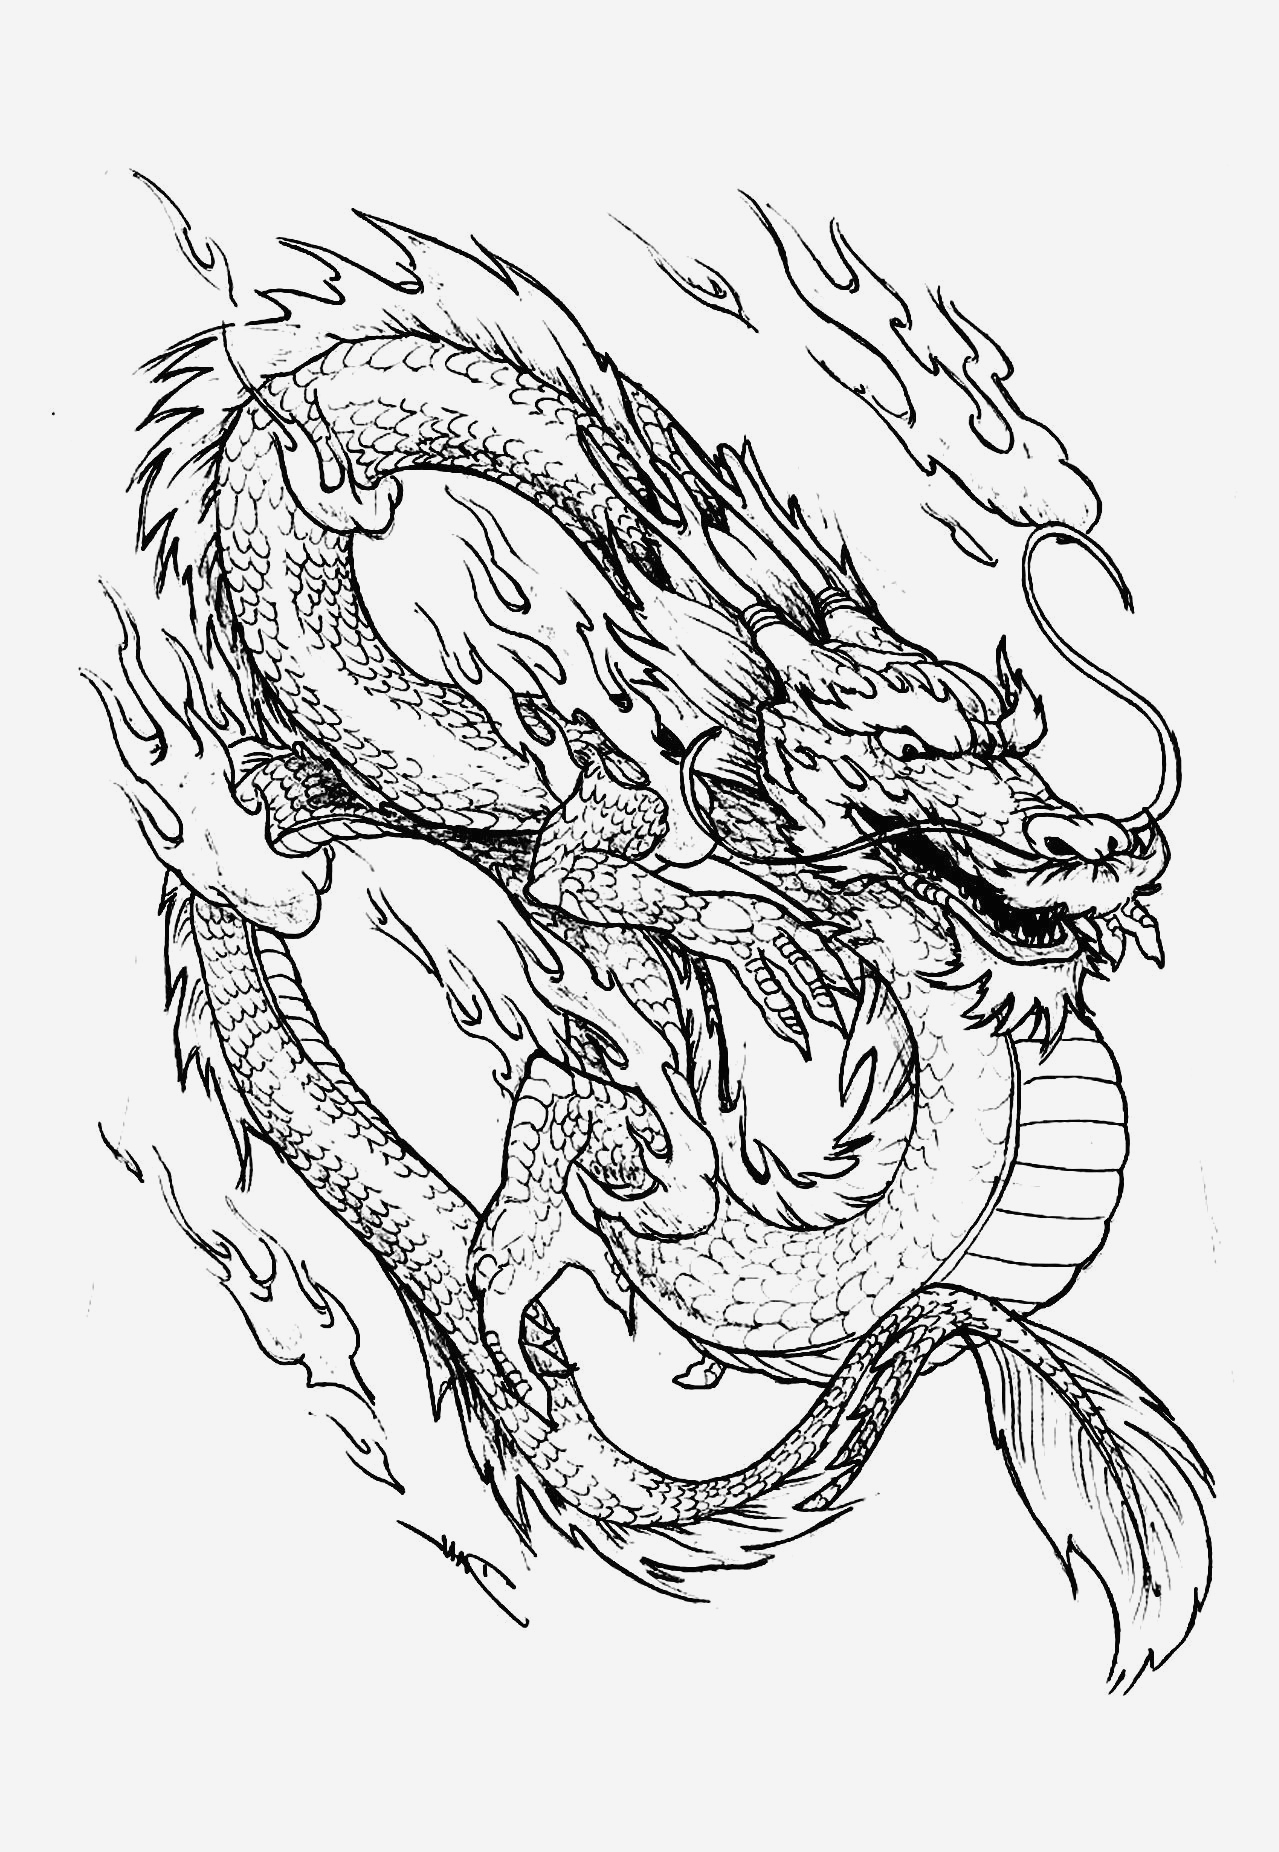 Coloriage Dragon Chinois Inspirational Galerie De Coloriages Gratuits Coloriage Dragon Chinois Of Coloriage Dragon Chinois